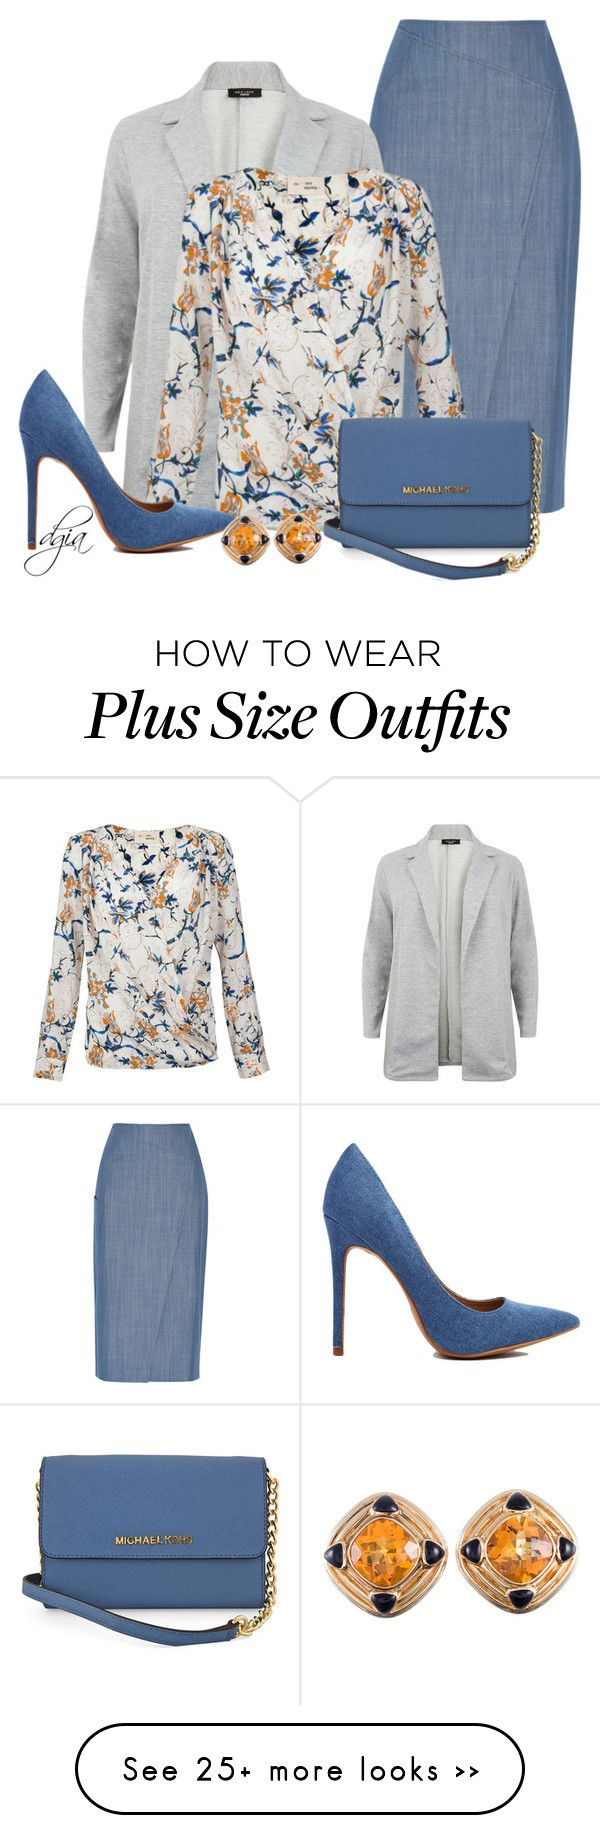 """Denim Skirt & Blazer"" by dgia on Polyvore featuring TIBI and Michael Kors"